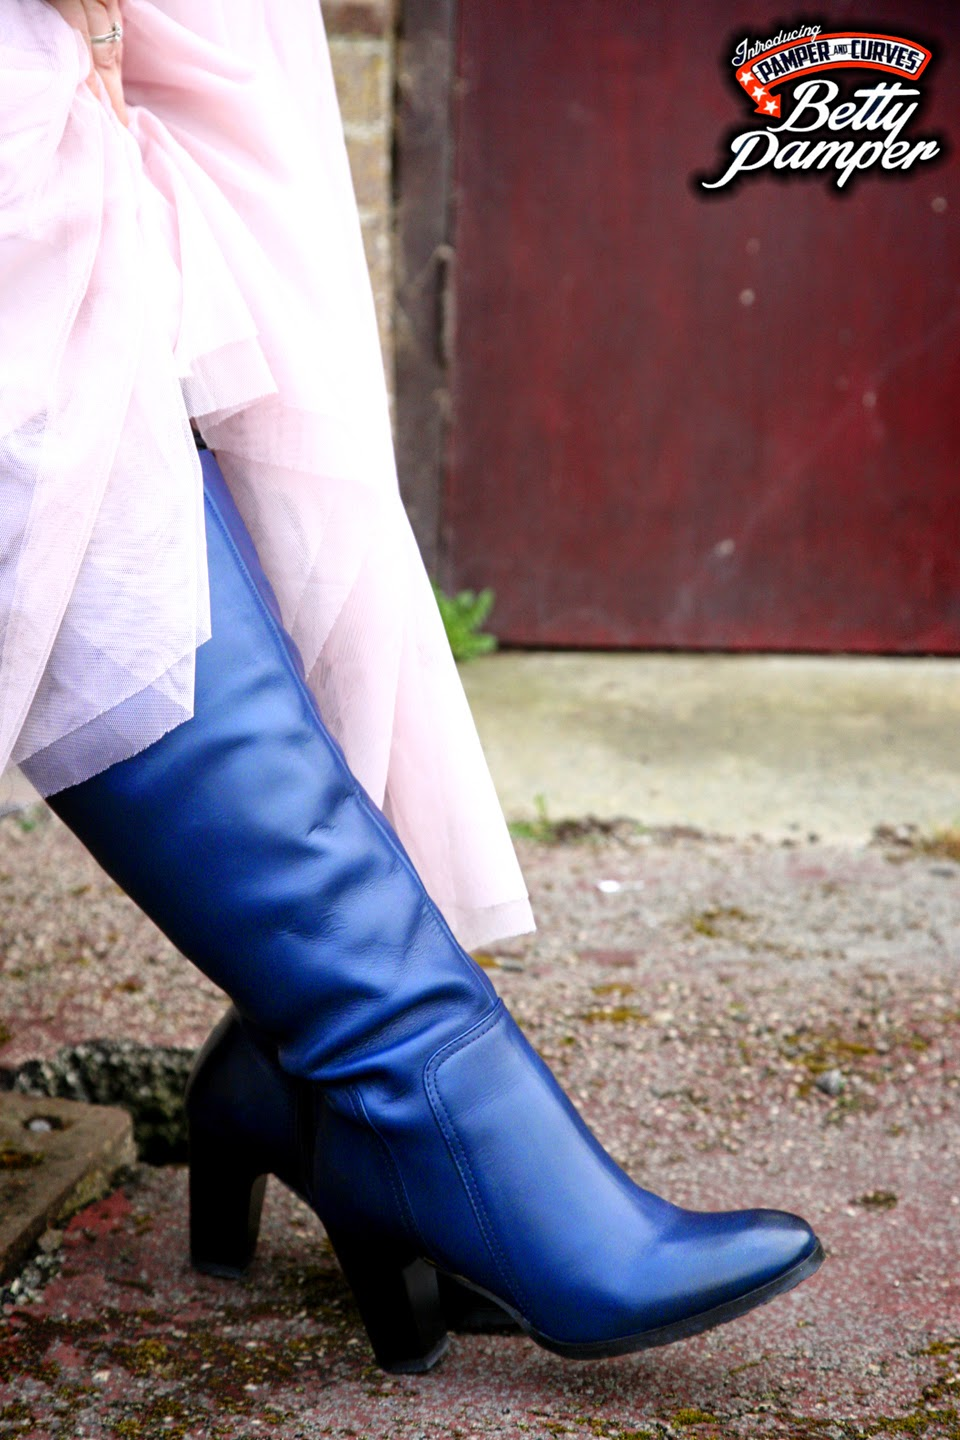 Wide Calf Boots With Jilsen | Pamper and Curves